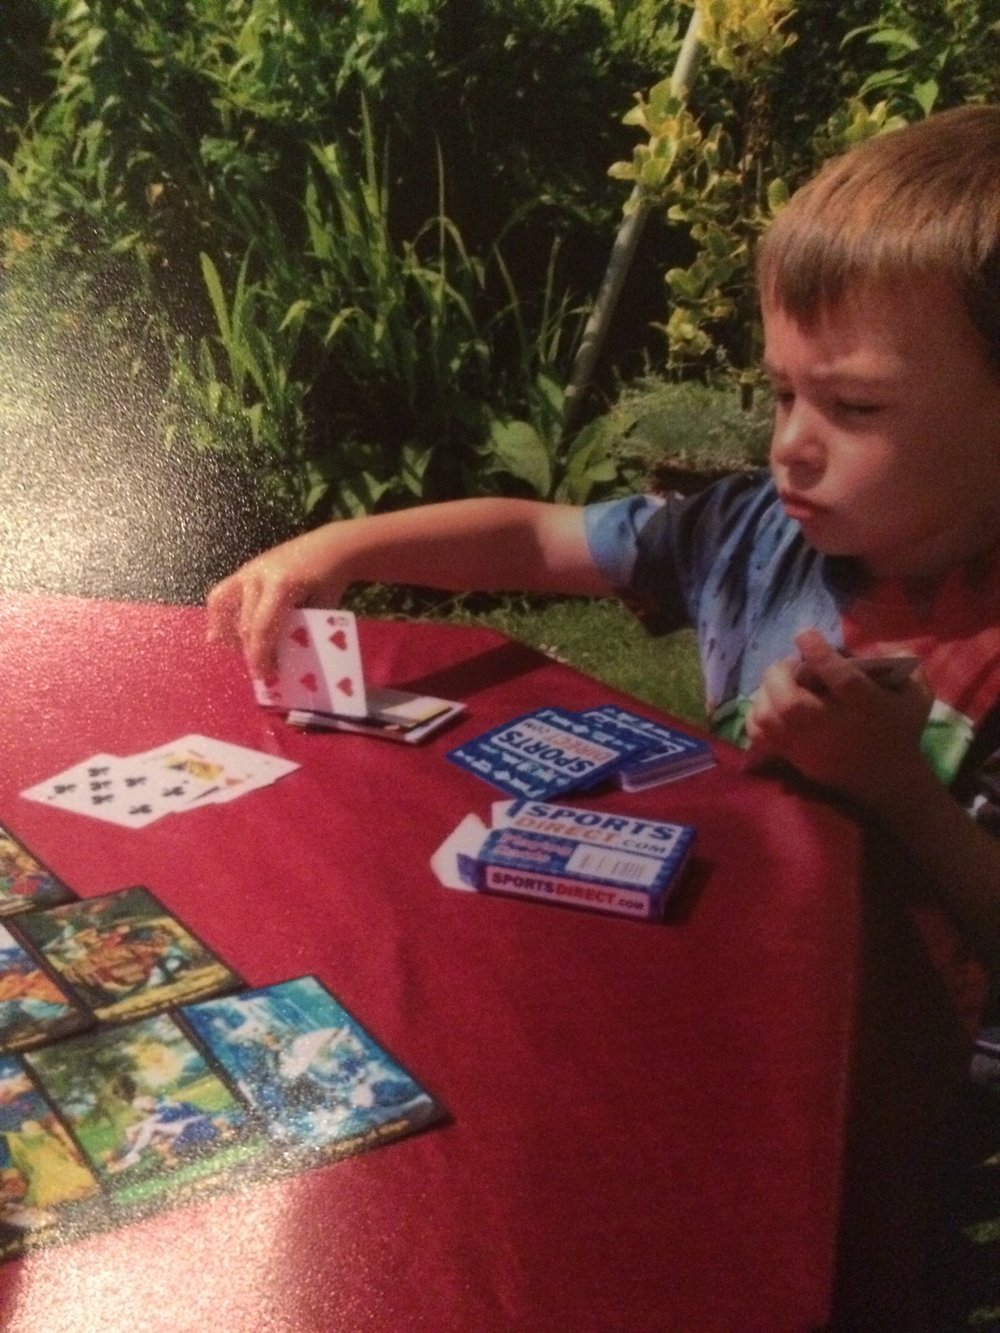 This is a picture of my nephew learning fortune telling as a child a couple of years back. In Gypsy culture, men generally don't practice divination or tarot but he was curious so I started teaching him some beginners techniques.